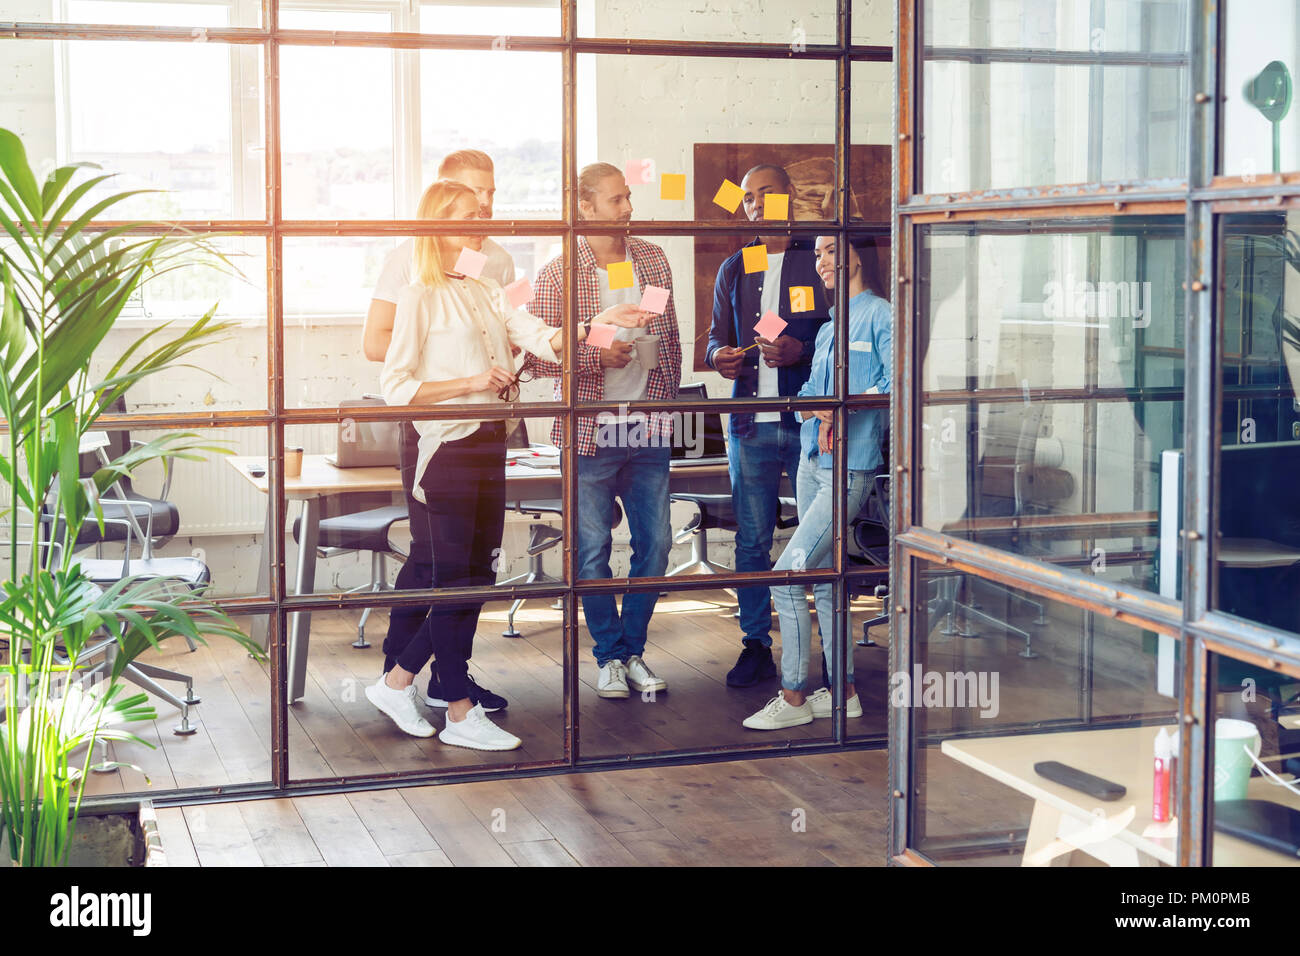 Sharing business ideas. Full length of young modern people in smart casual wear using adhesive notes while standing behind the glass wall in the board room. - Stock Image